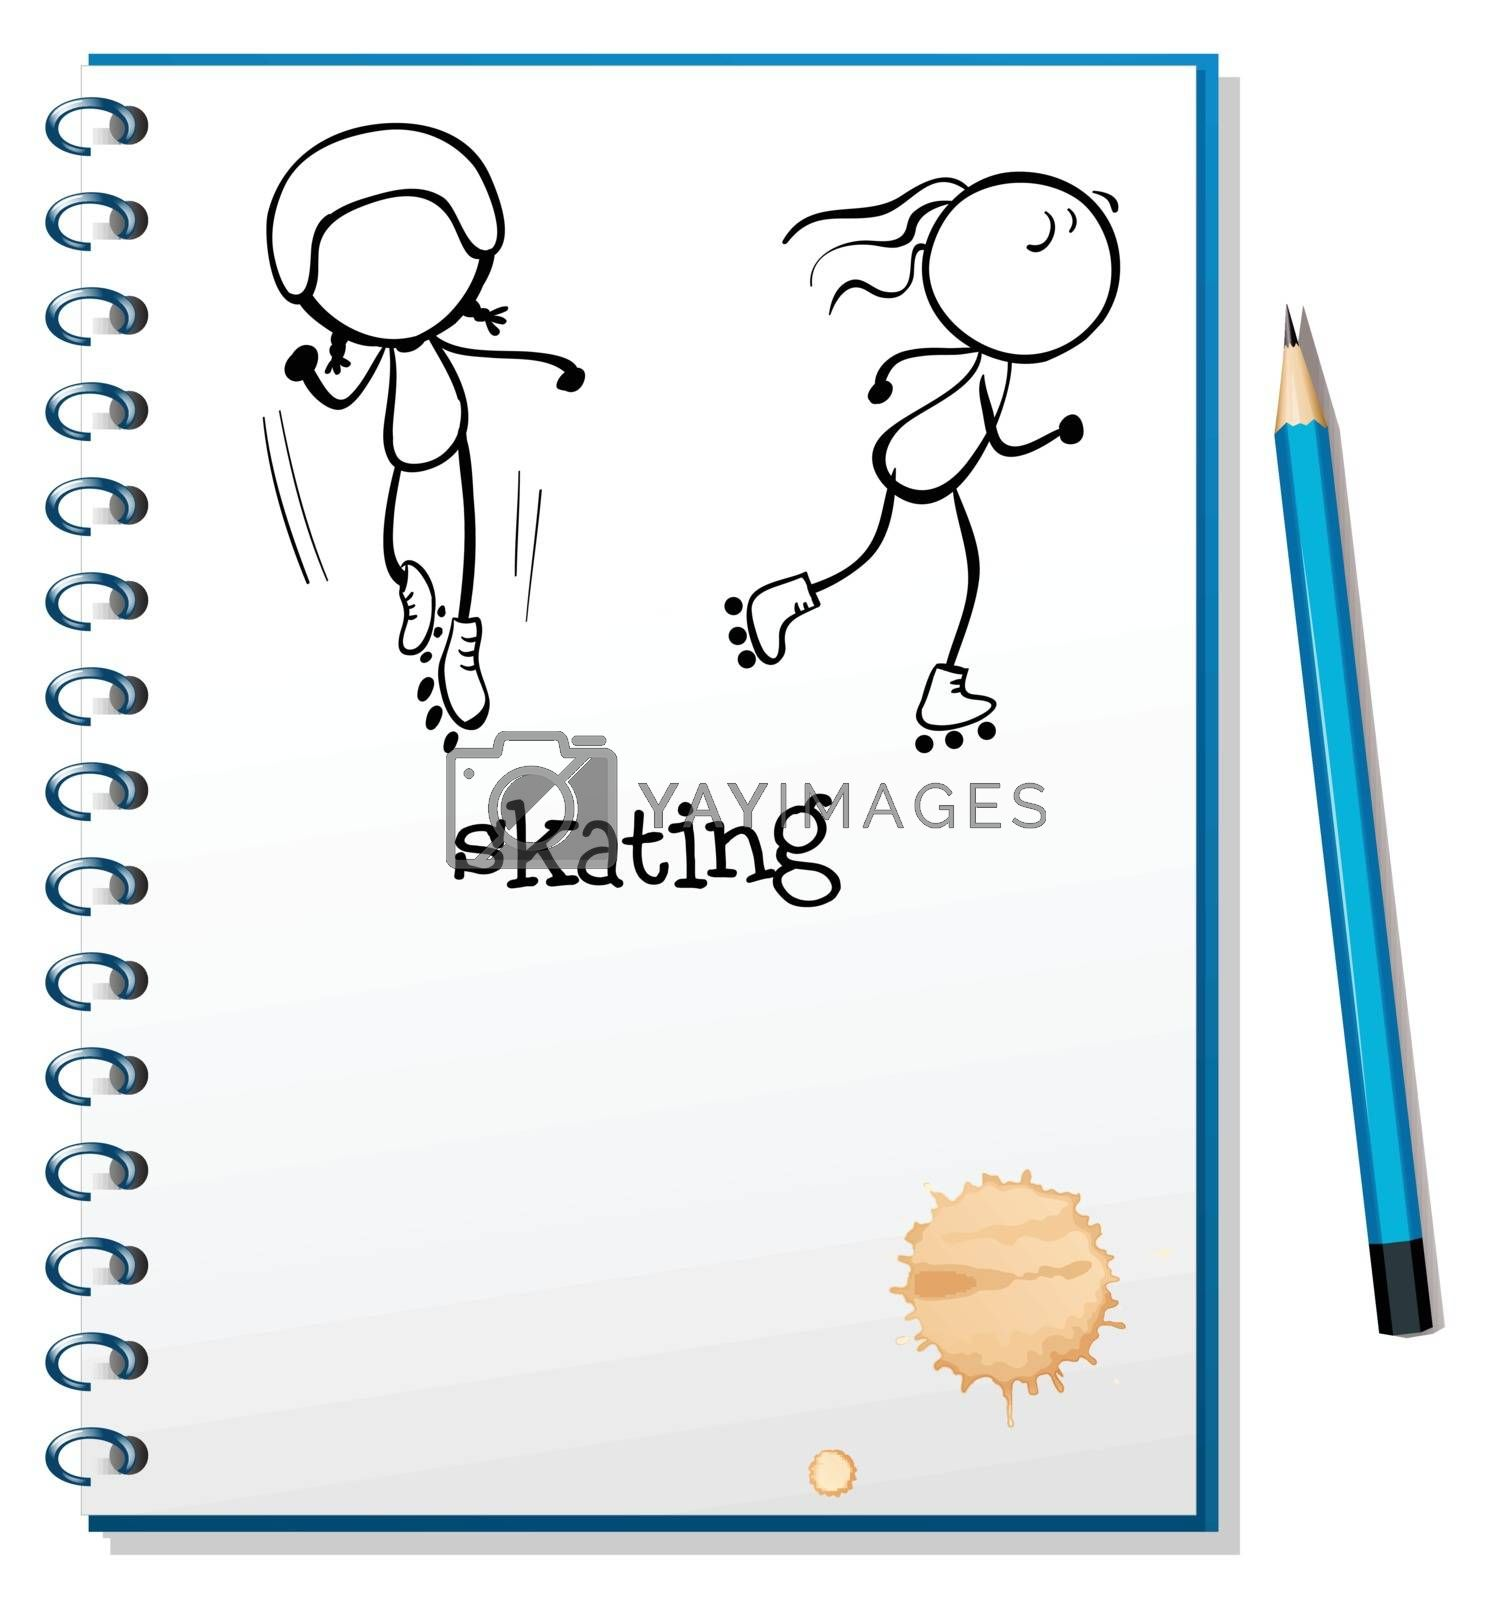 Illustration of a notebook with a sketch of two people skating on a white background